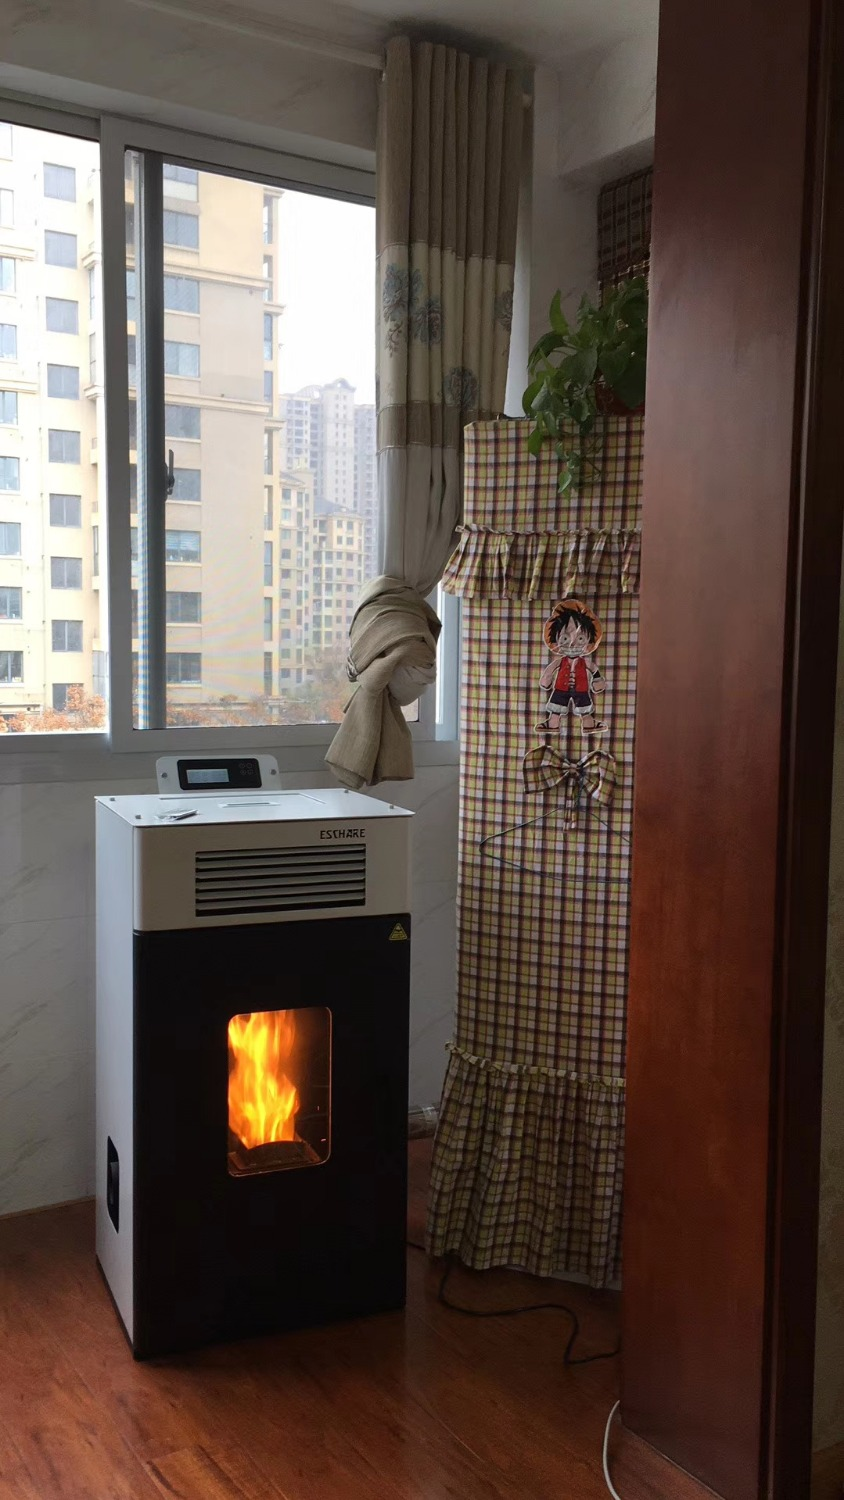 family use Mini Biomass Hydrologic cycle pellet stove 6 kw- 30 kw image